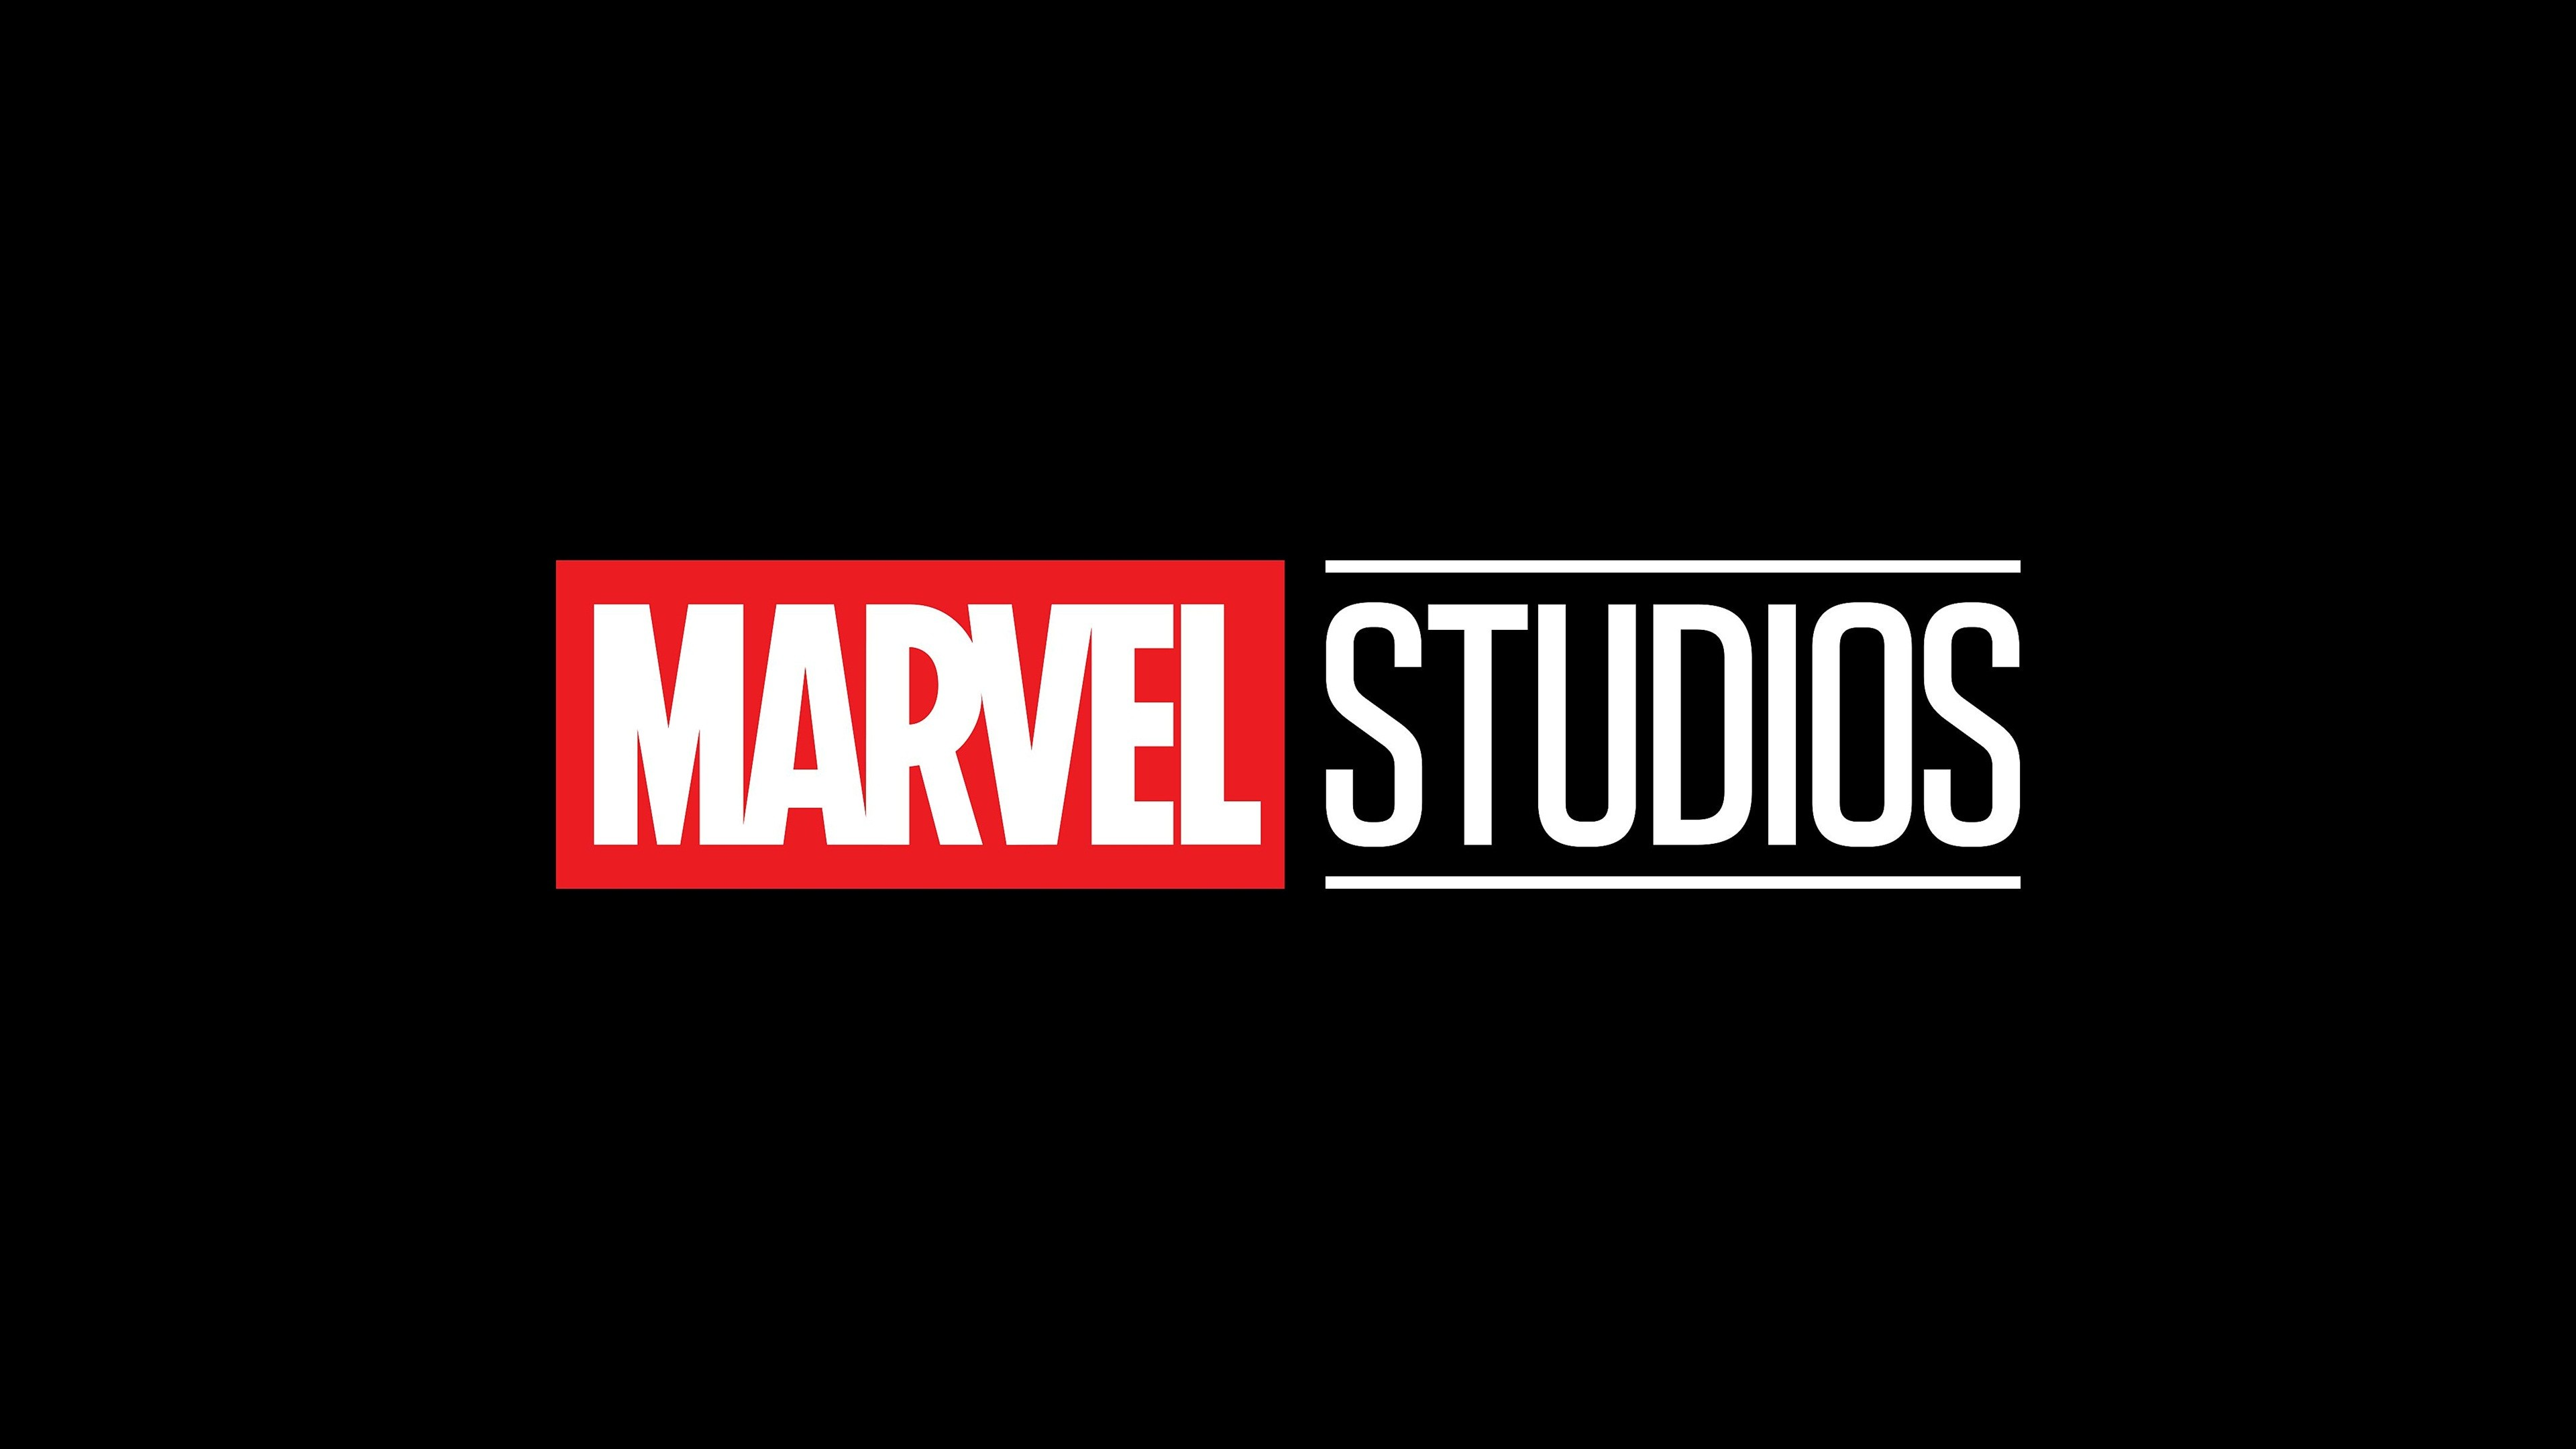 4k Marvel Logo Hd Desktop Wallpaper 38017 Data Src Marvel Studios Wallpaper Hd 3840x2160 Wallpaper Teahub Io